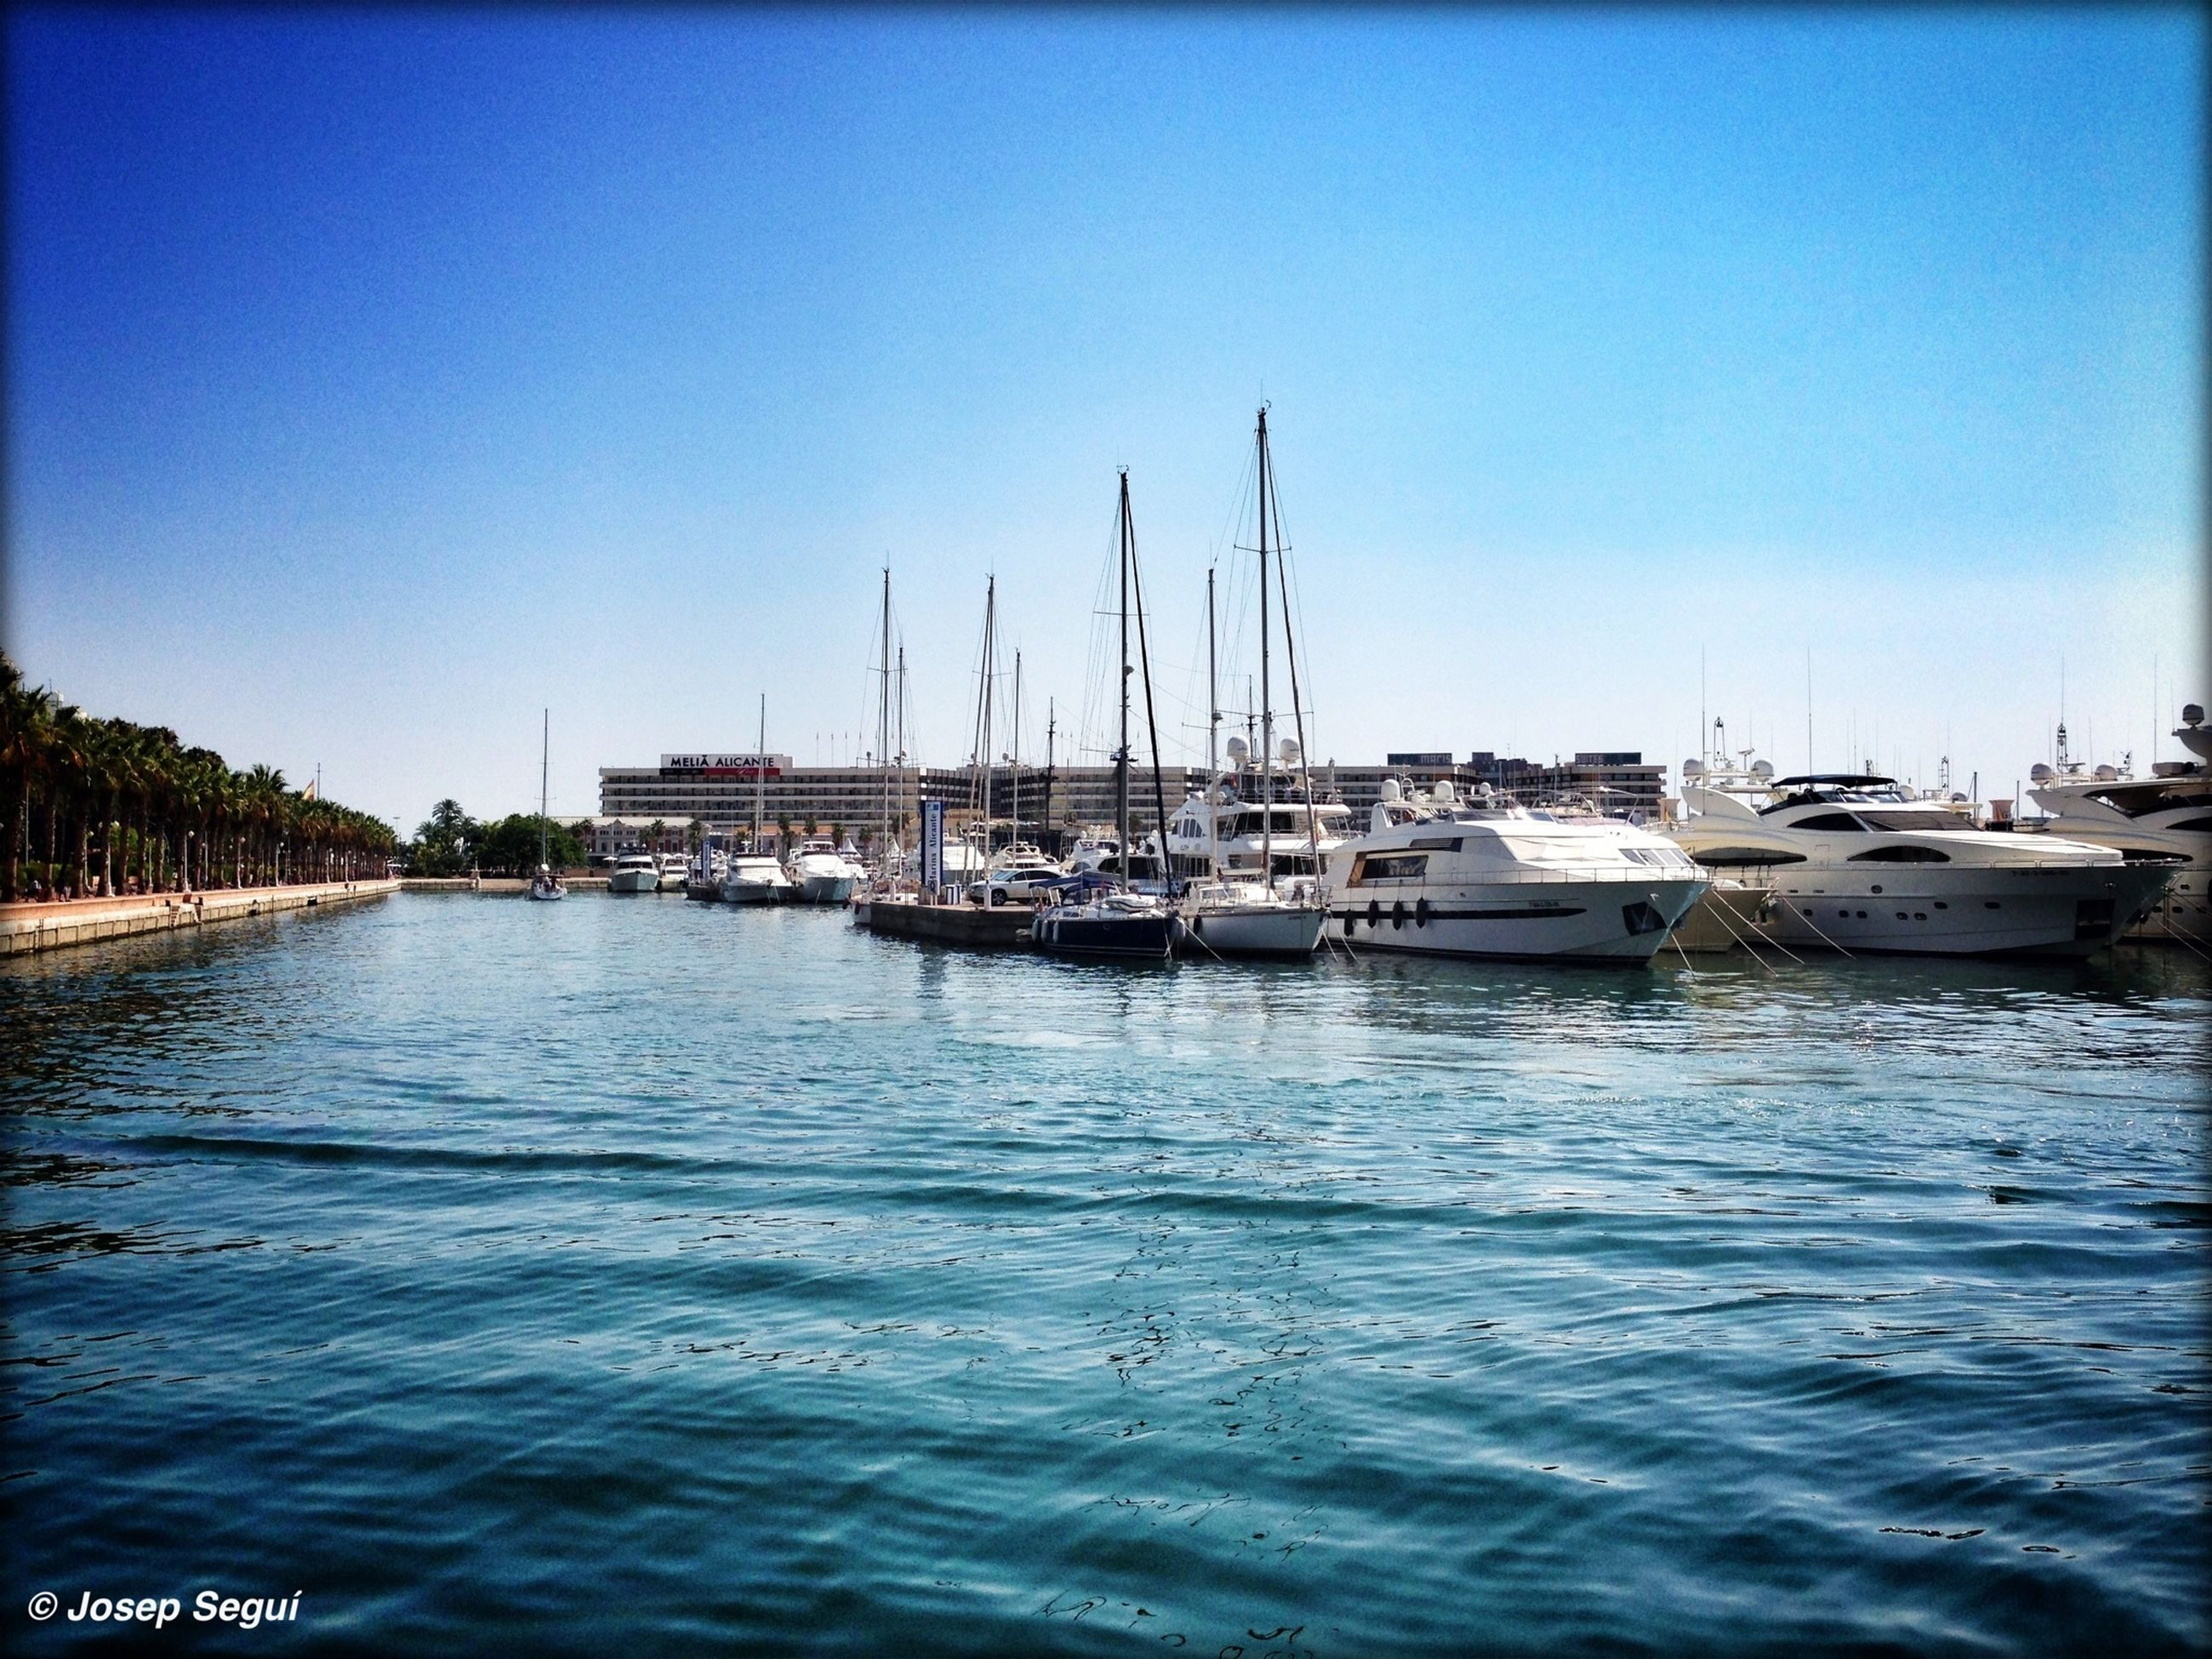 nautical vessel, water, boat, transportation, moored, mode of transport, clear sky, waterfront, blue, copy space, harbor, transfer print, sailboat, sea, mast, auto post production filter, nature, rippled, lake, tranquil scene